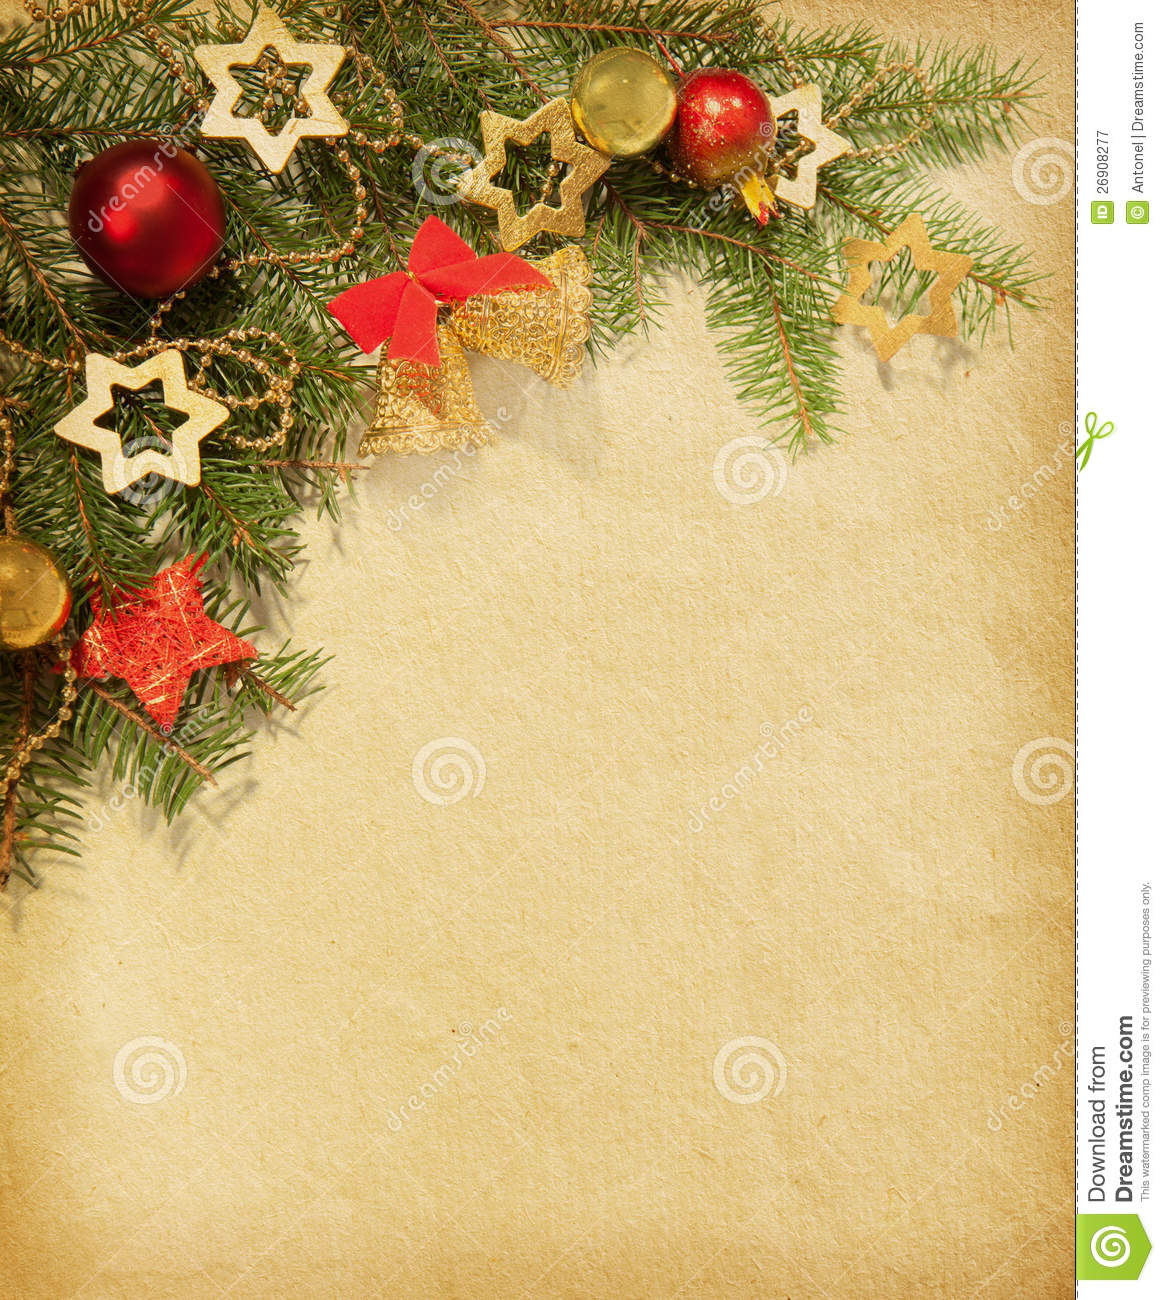 Christmas Vintage Border. Royalty Free Stock Photography - Image ...